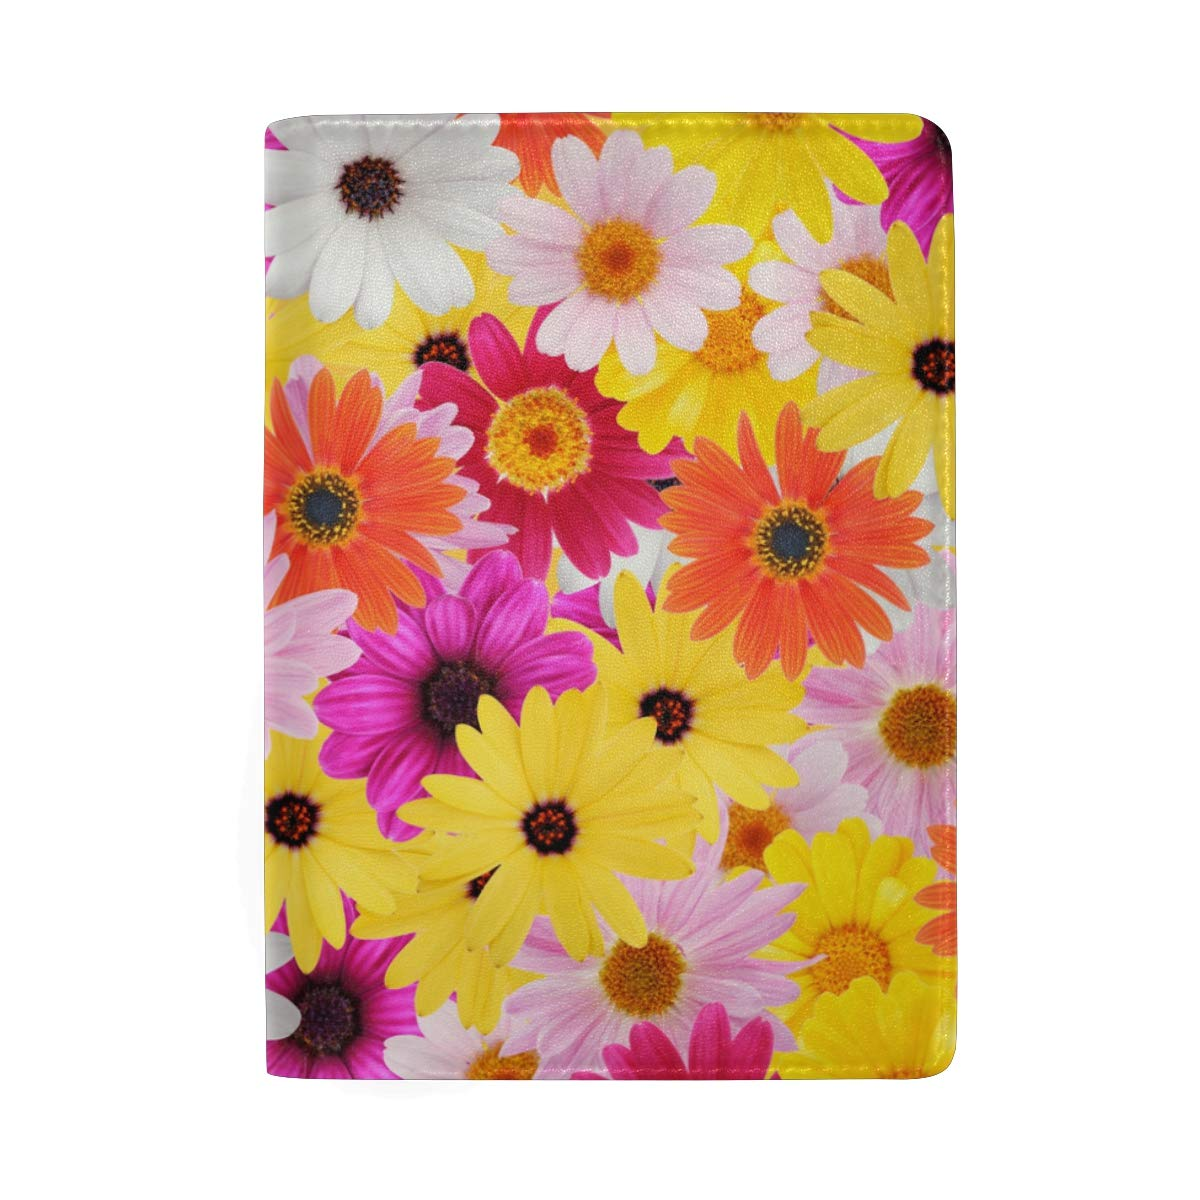 Floral Colorful Flower Daisy Leather Passport Holder Cover Case Protector for Men Women Travel with Slots